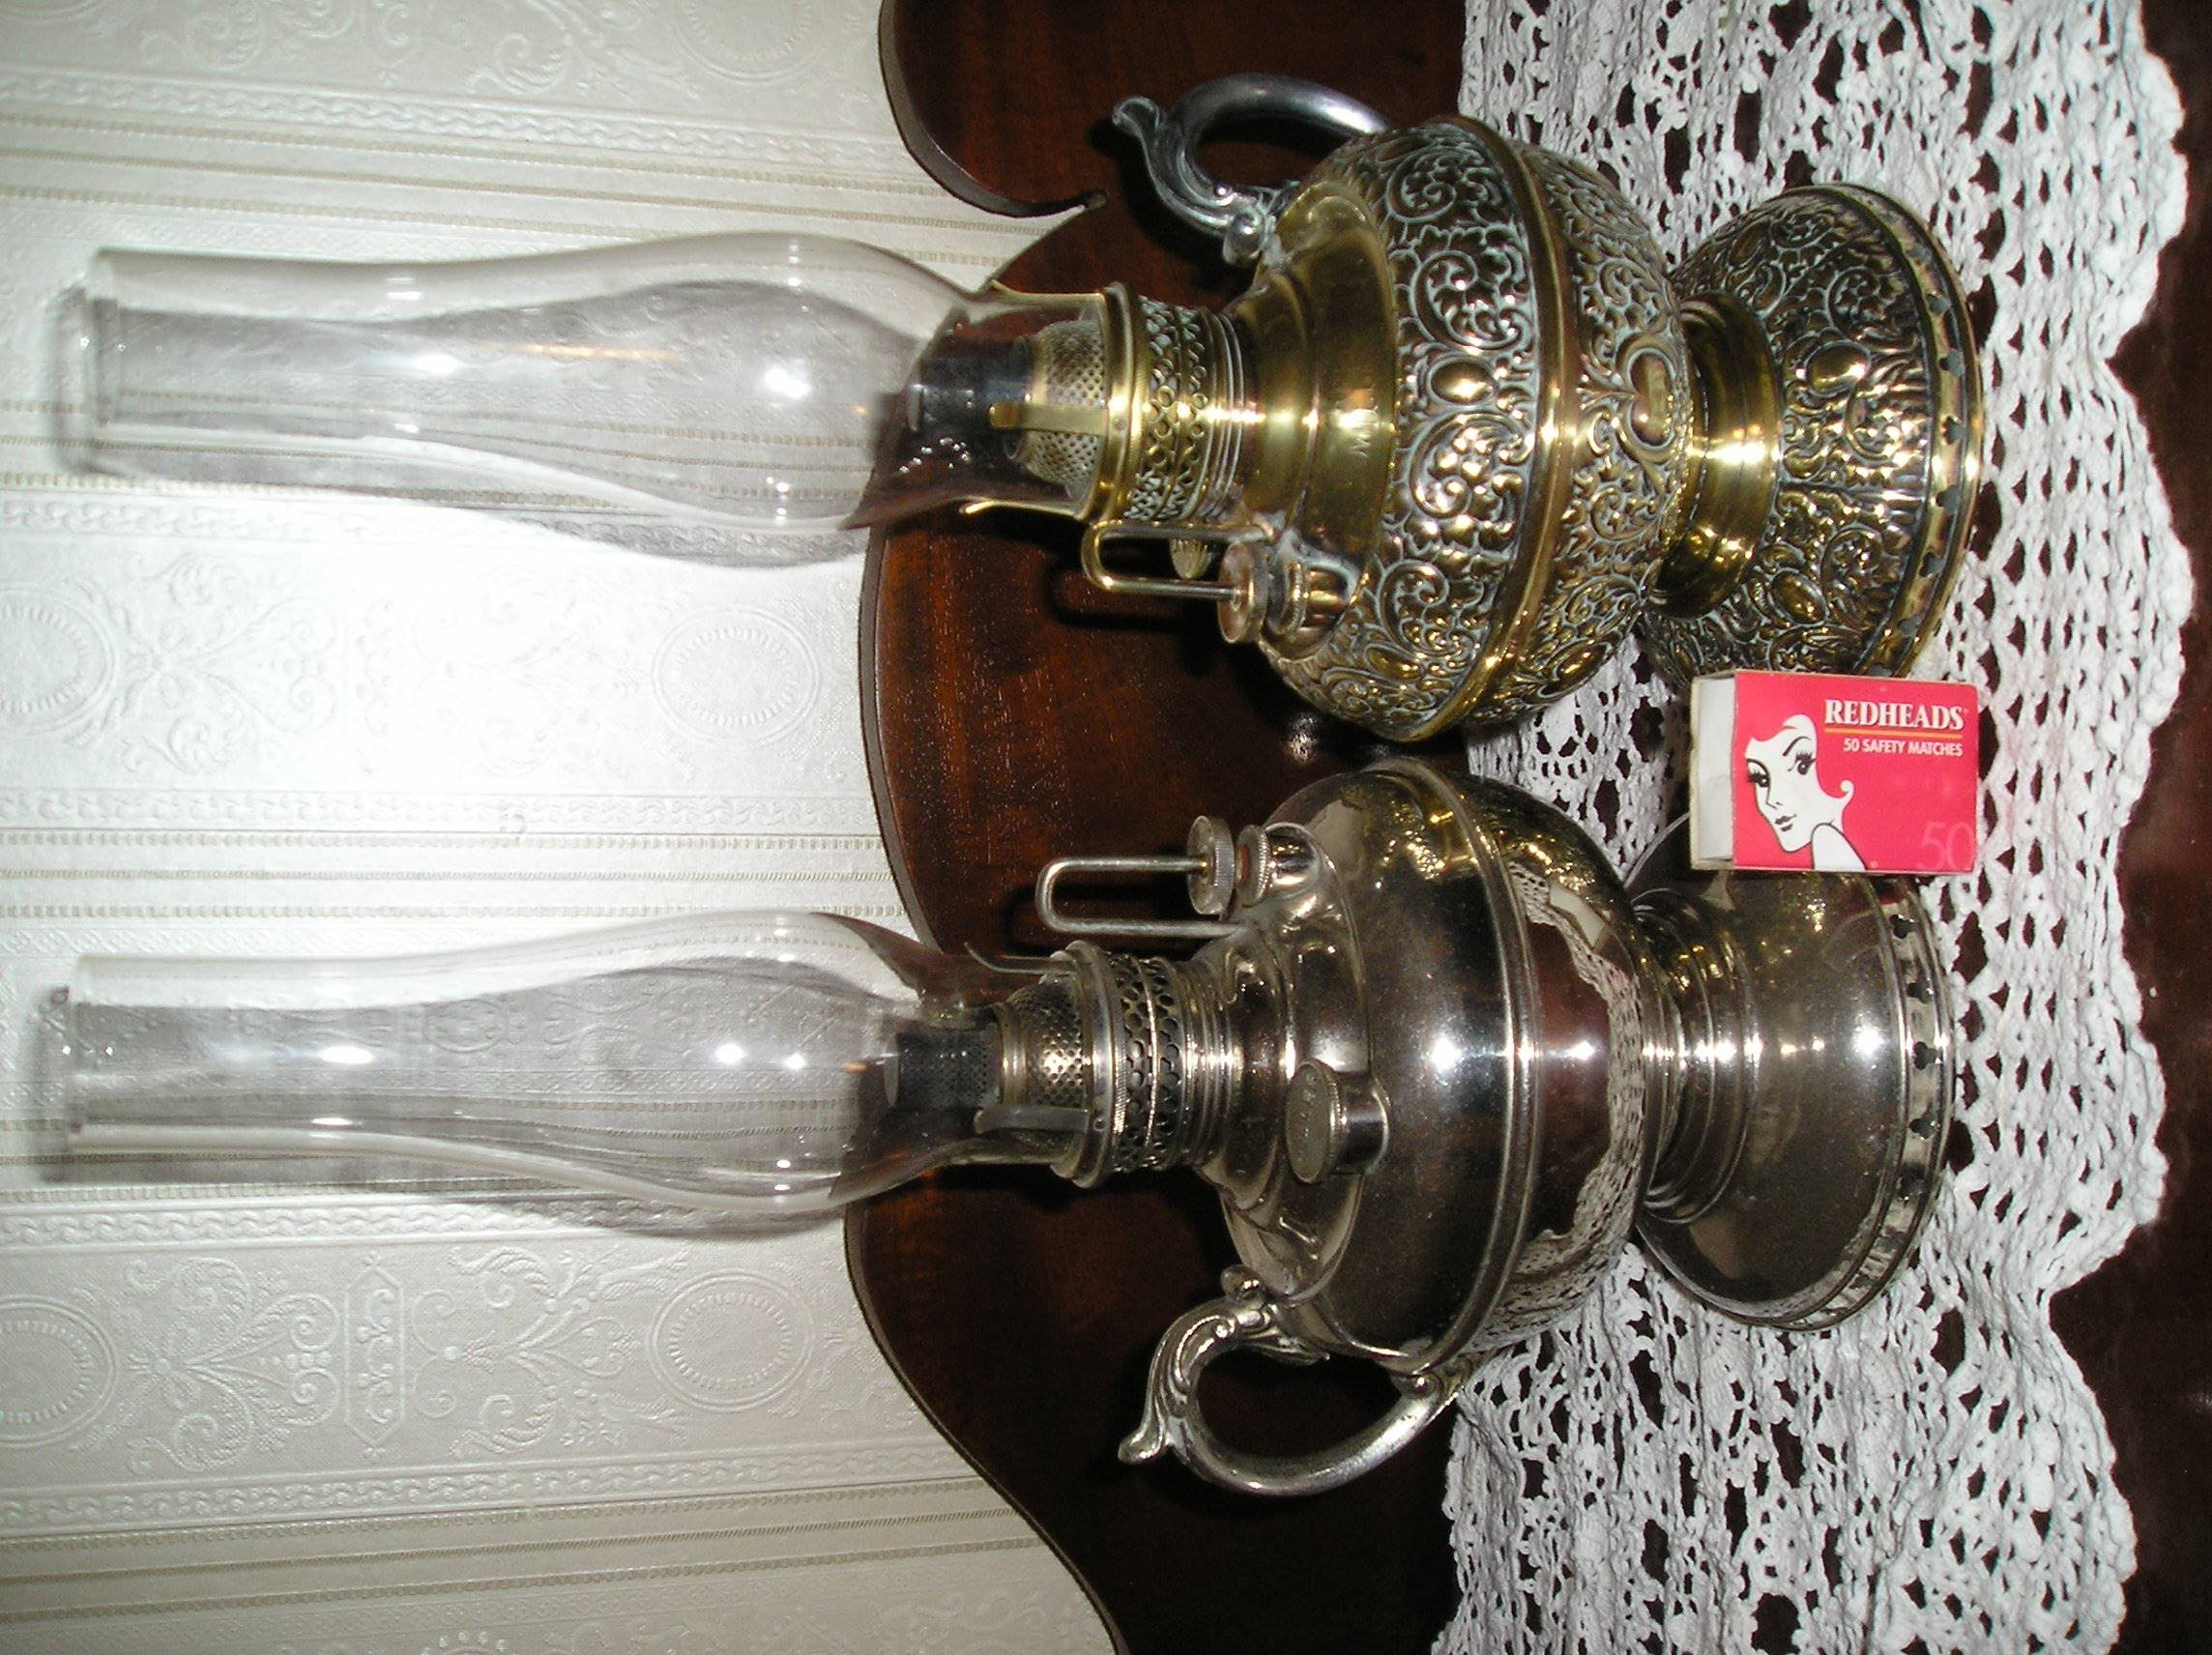 highly millerstudentlamps to meriden they most double are burner conneticuit ideal draught lamp central company economical seen and often these edward were lamps usa millernewvestalbrassstudentlamp hard of come in miller use student sought after by